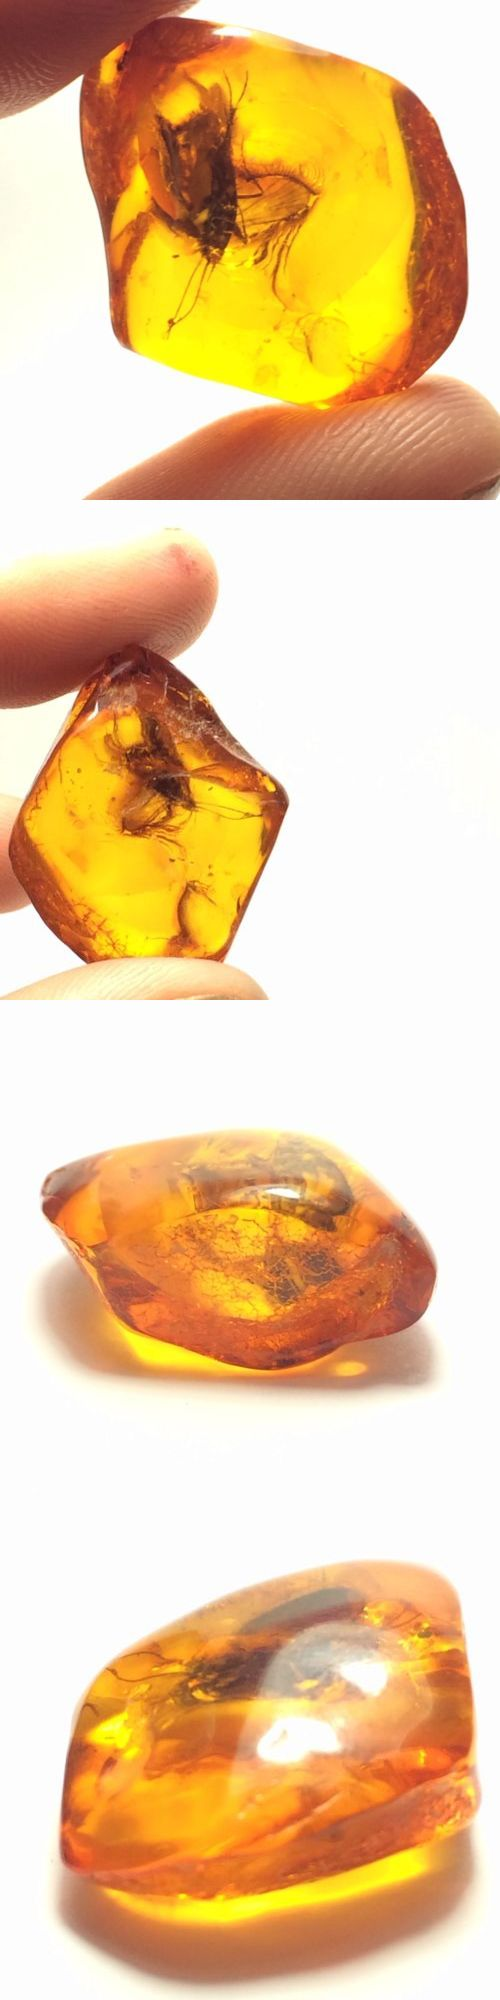 Amber 10191: 20 Ct Authentic Baltic Honey Amber Fossil Cabochon Huge Insect Bug Inclusions -> BUY IT NOW ONLY: $120 on eBay!